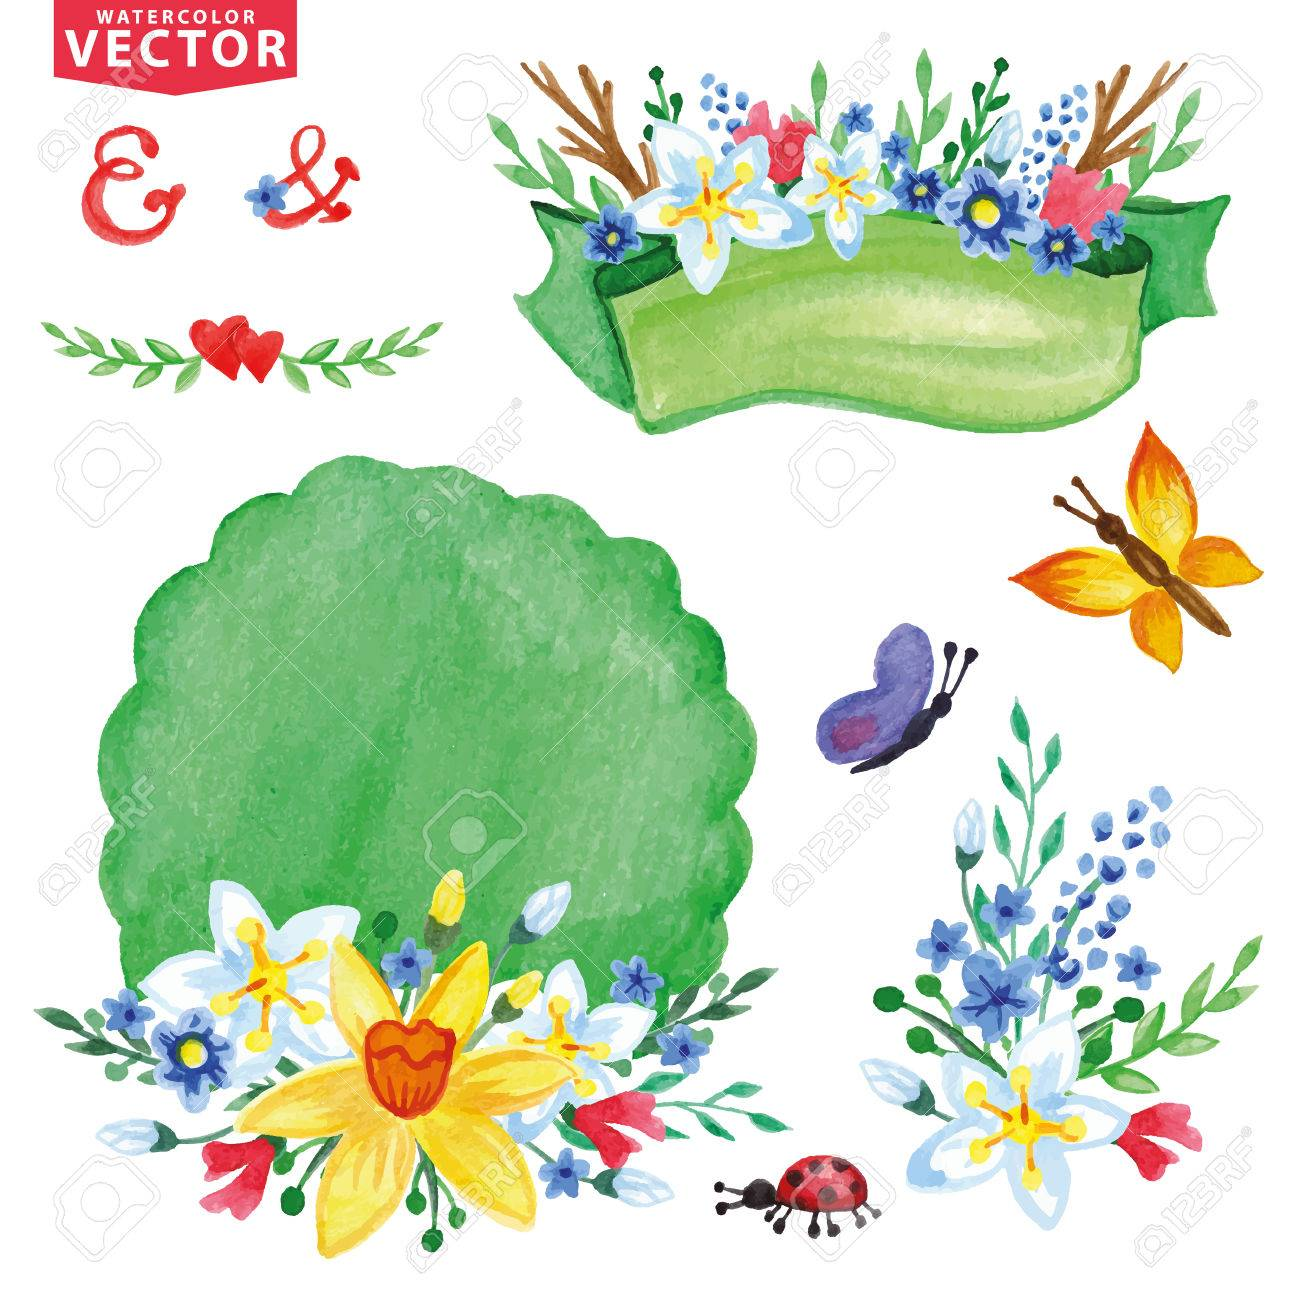 Watercolor Spring Flowers Bouquet Decor Set Royalty Free Cliparts